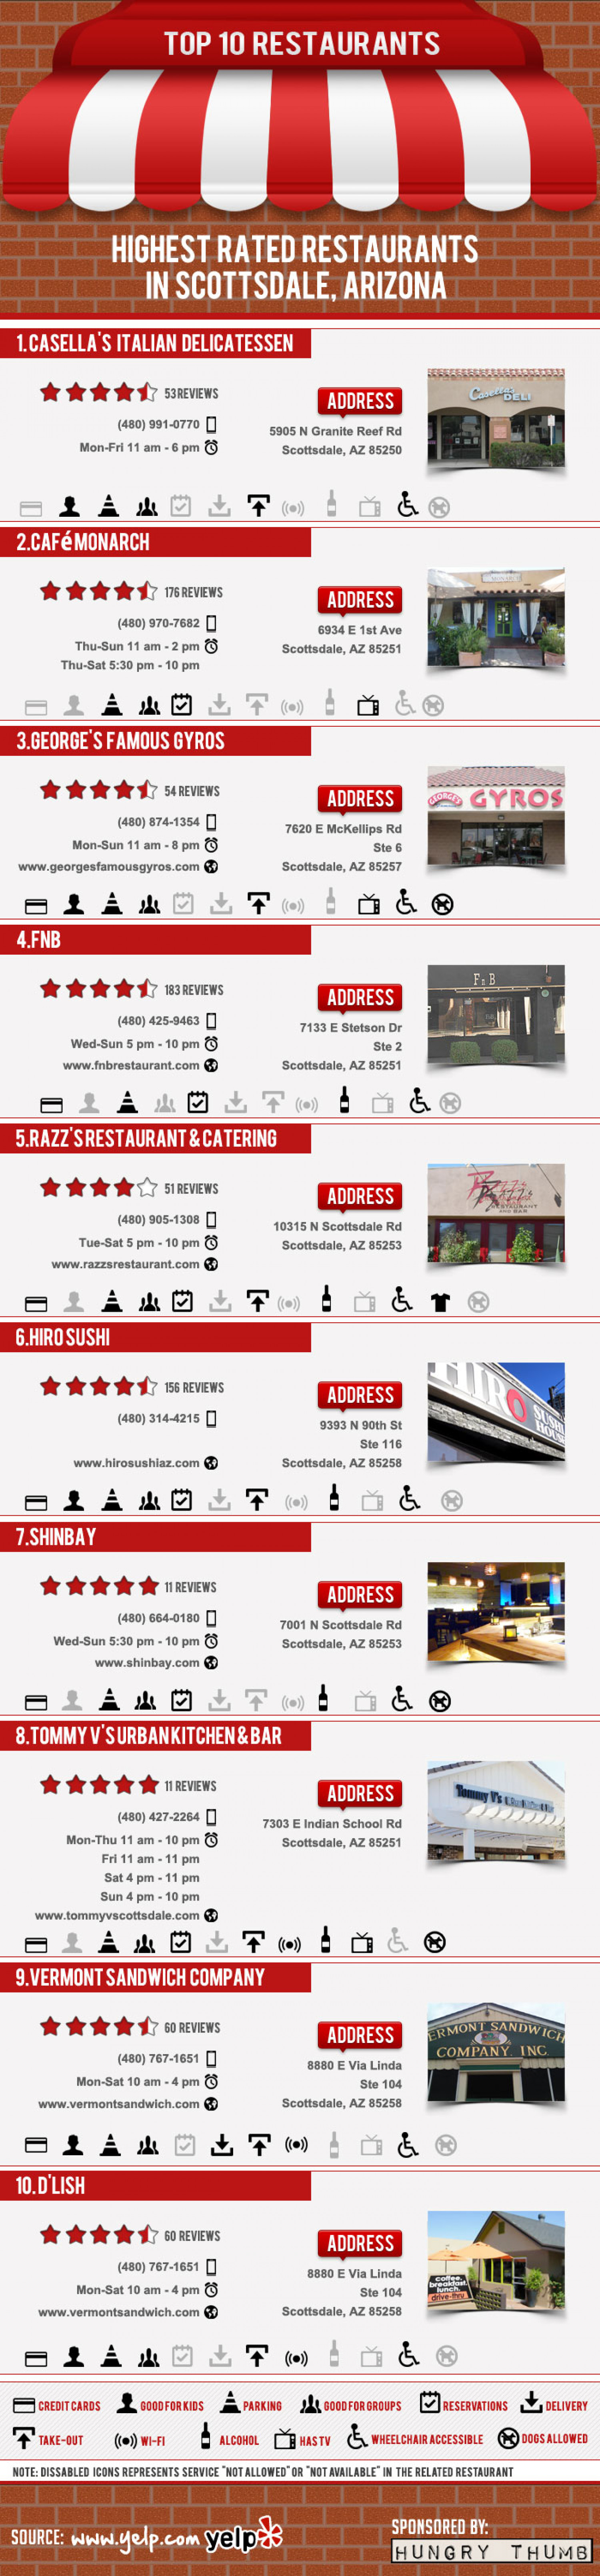 Best Places to Eat in Scottsdale, Arizona Infographic